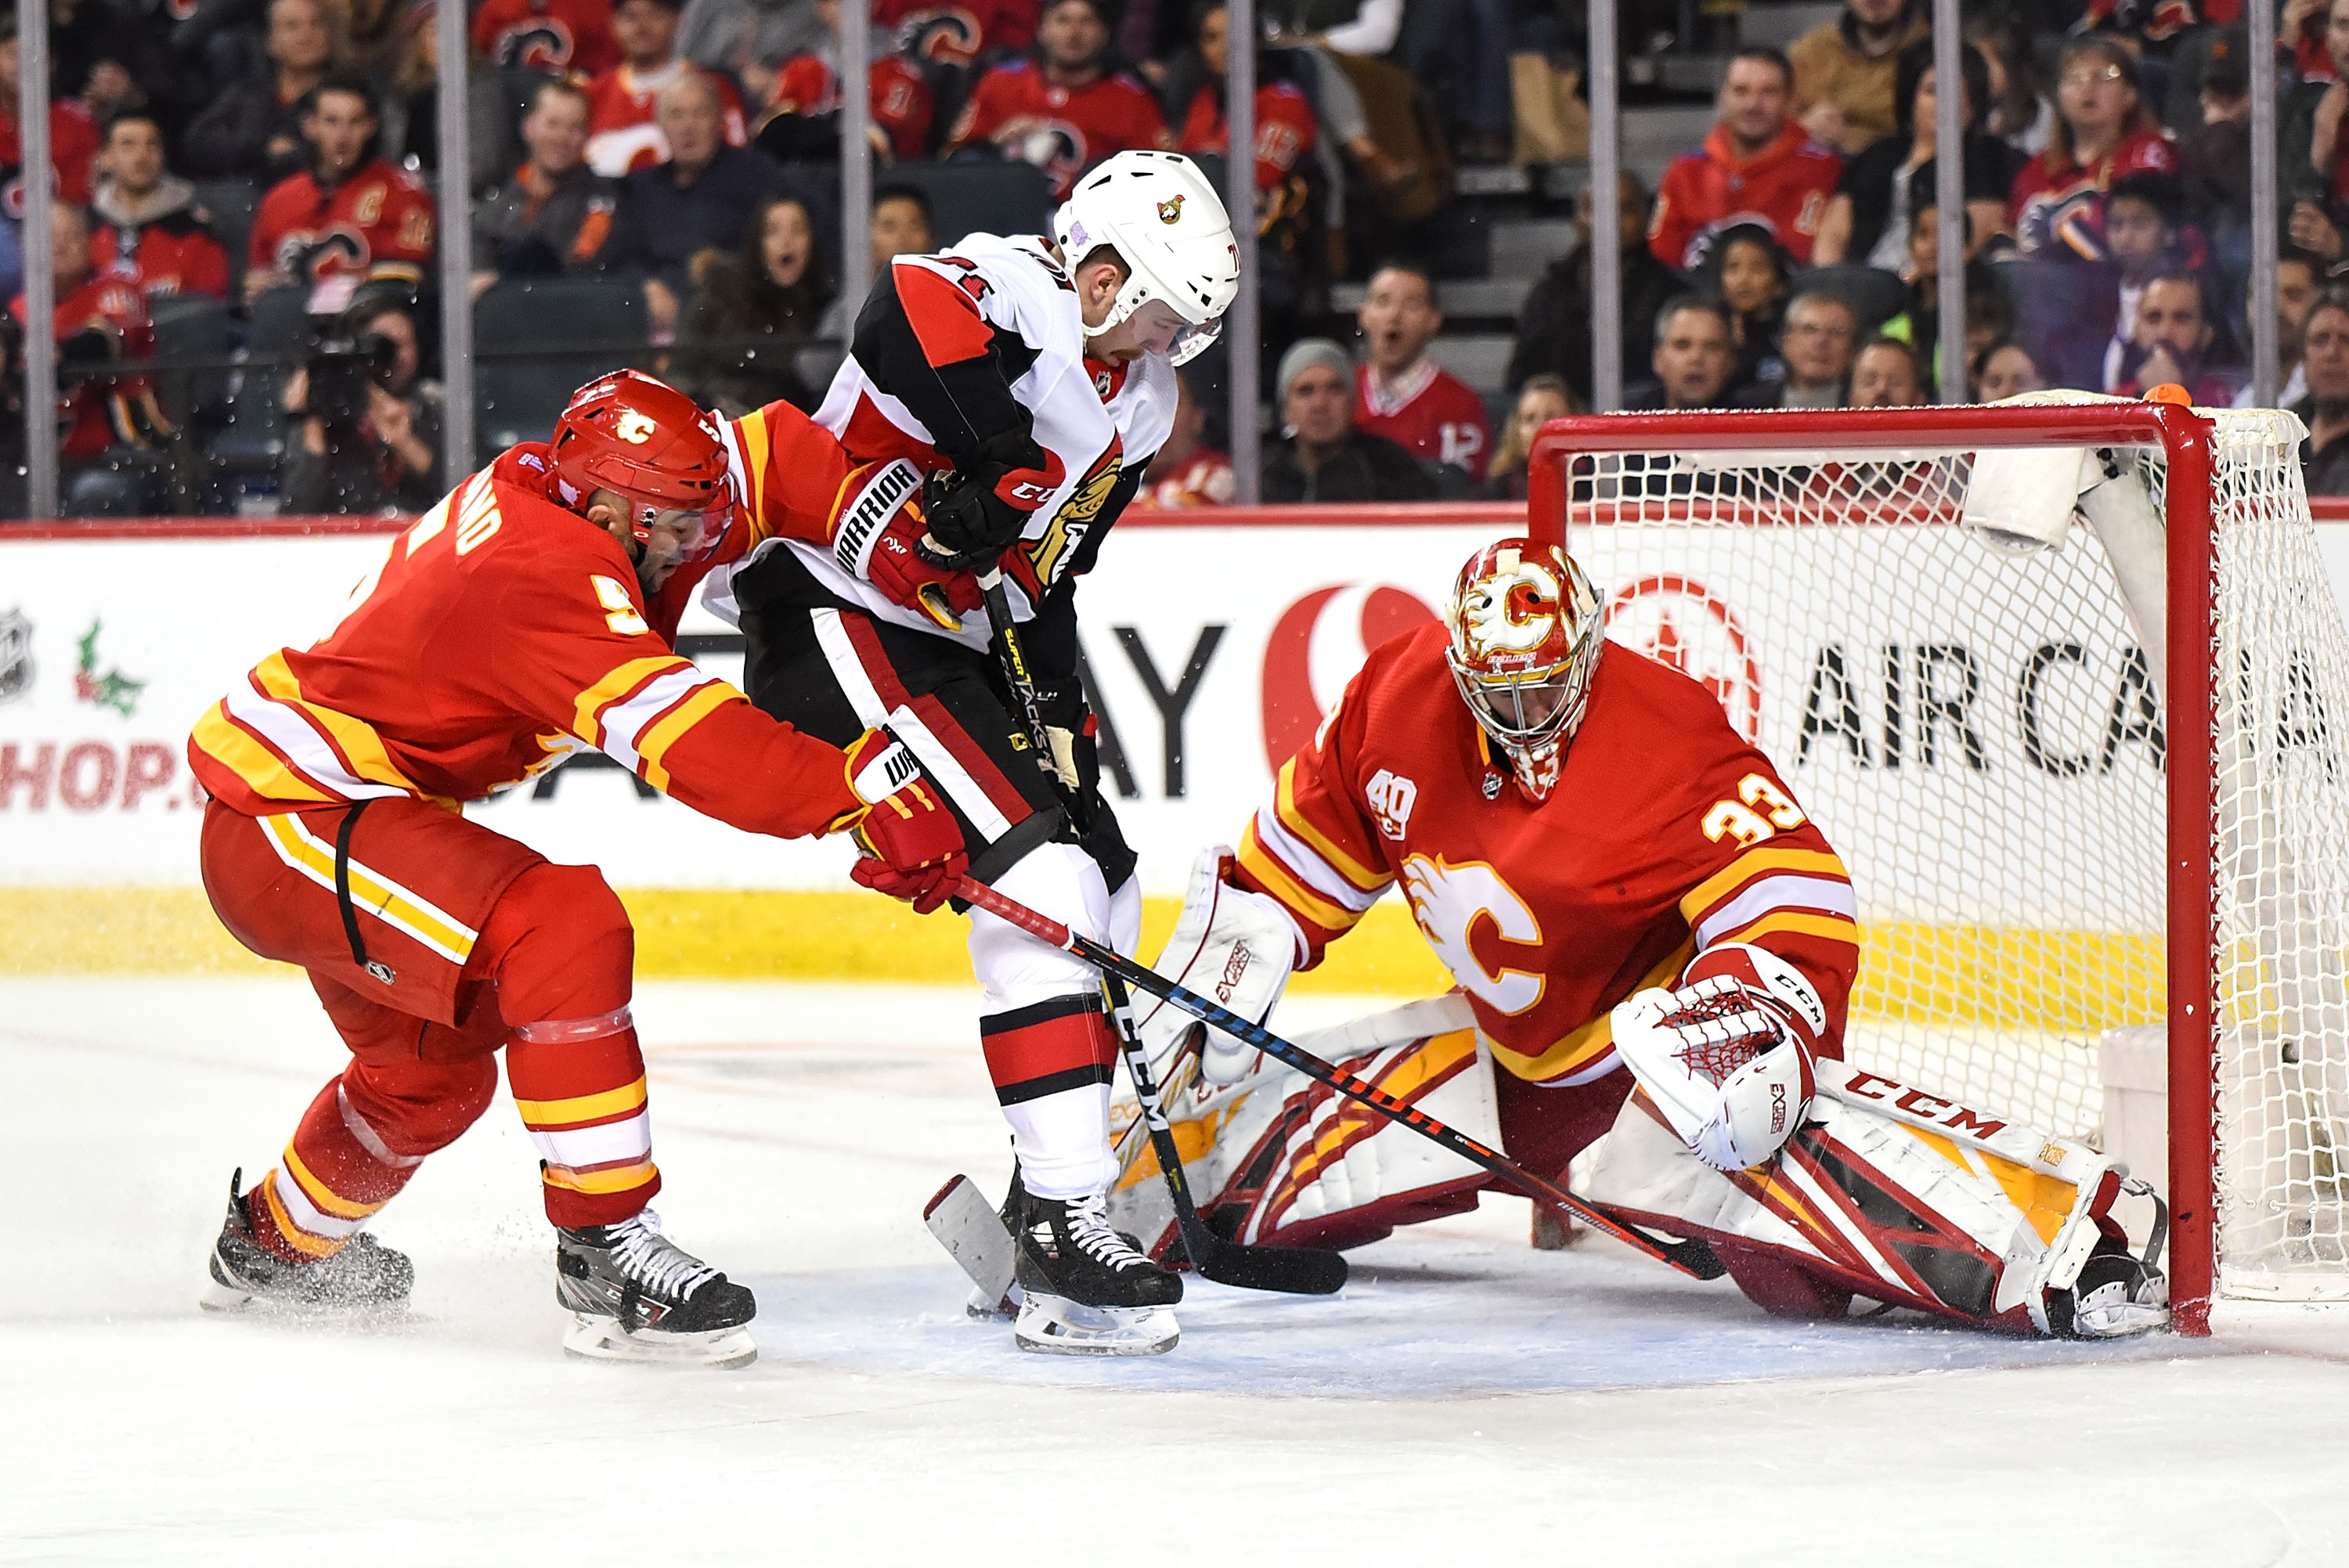 NHL: NOV 30 Senators at Flames